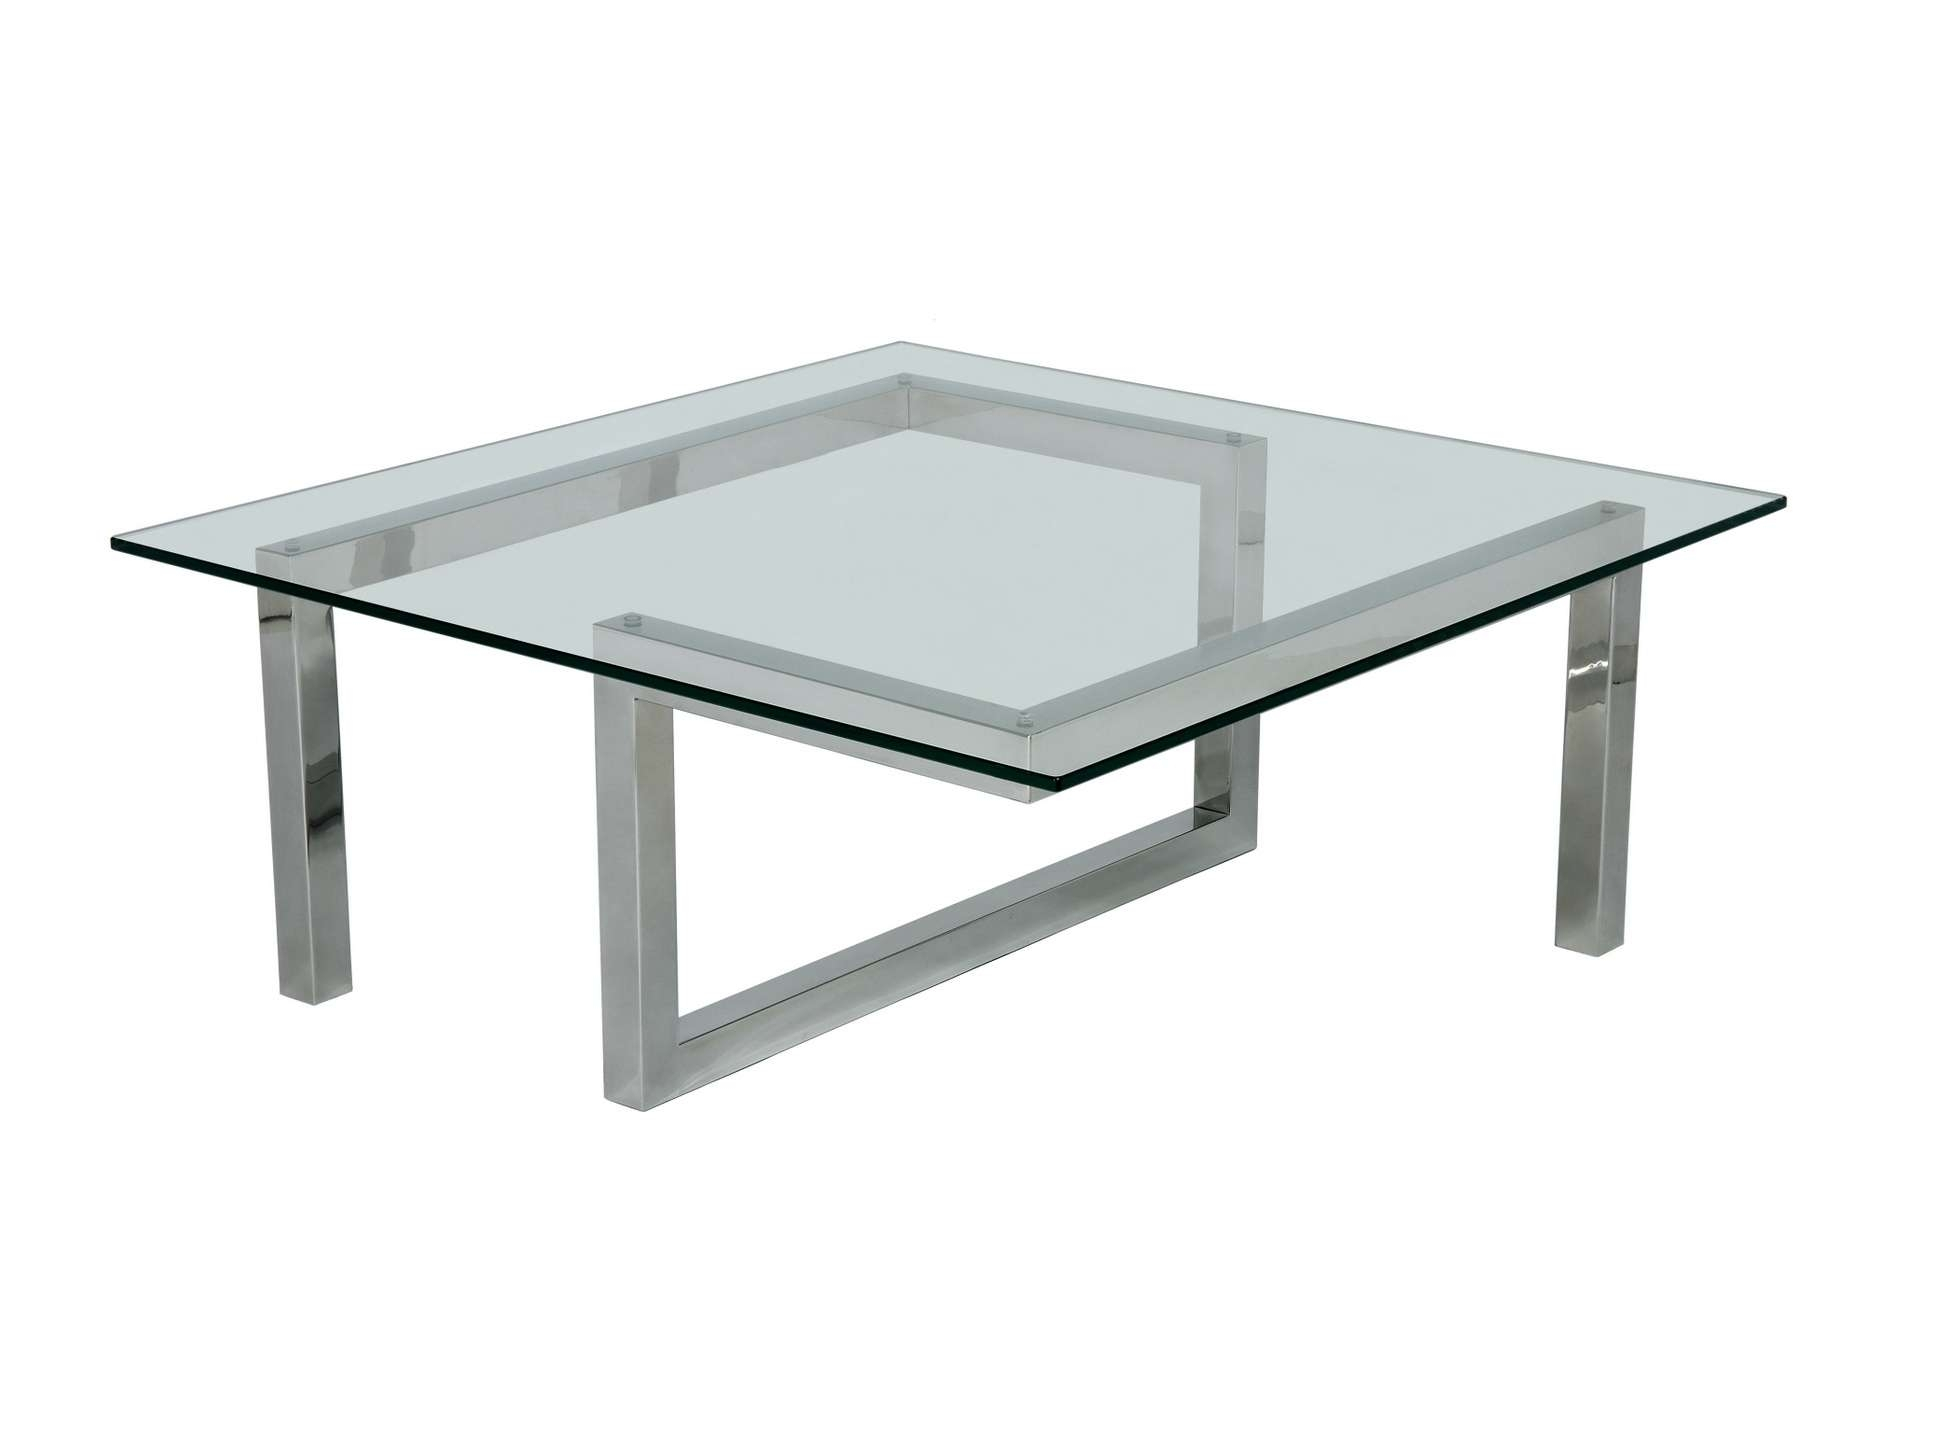 Decorations : Modern Glass Top Coffee Tables With Metal Base Pertaining To Newest Metal Square Coffee Tables (View 10 of 20)